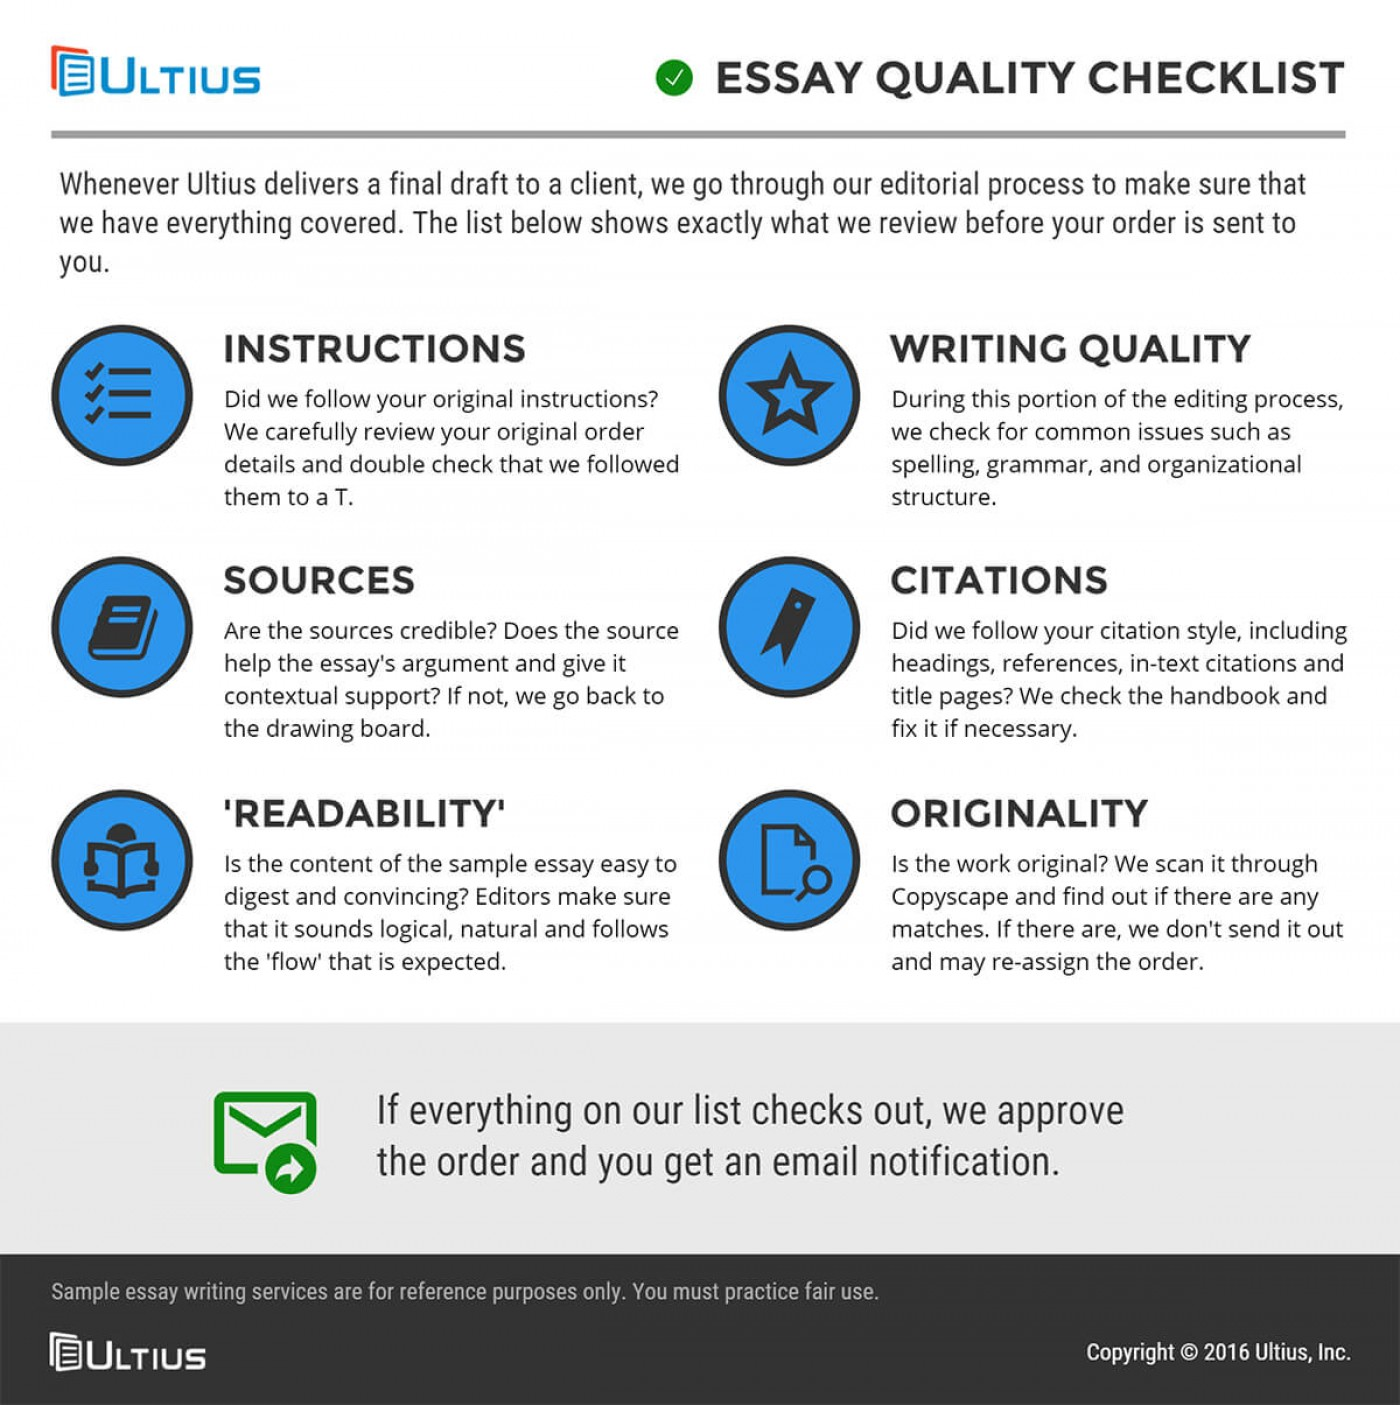 014 Essay Example Purchased Quality Checklist Dreaded Persuasive Definition And Examples Topics For Kids Rubric 1400